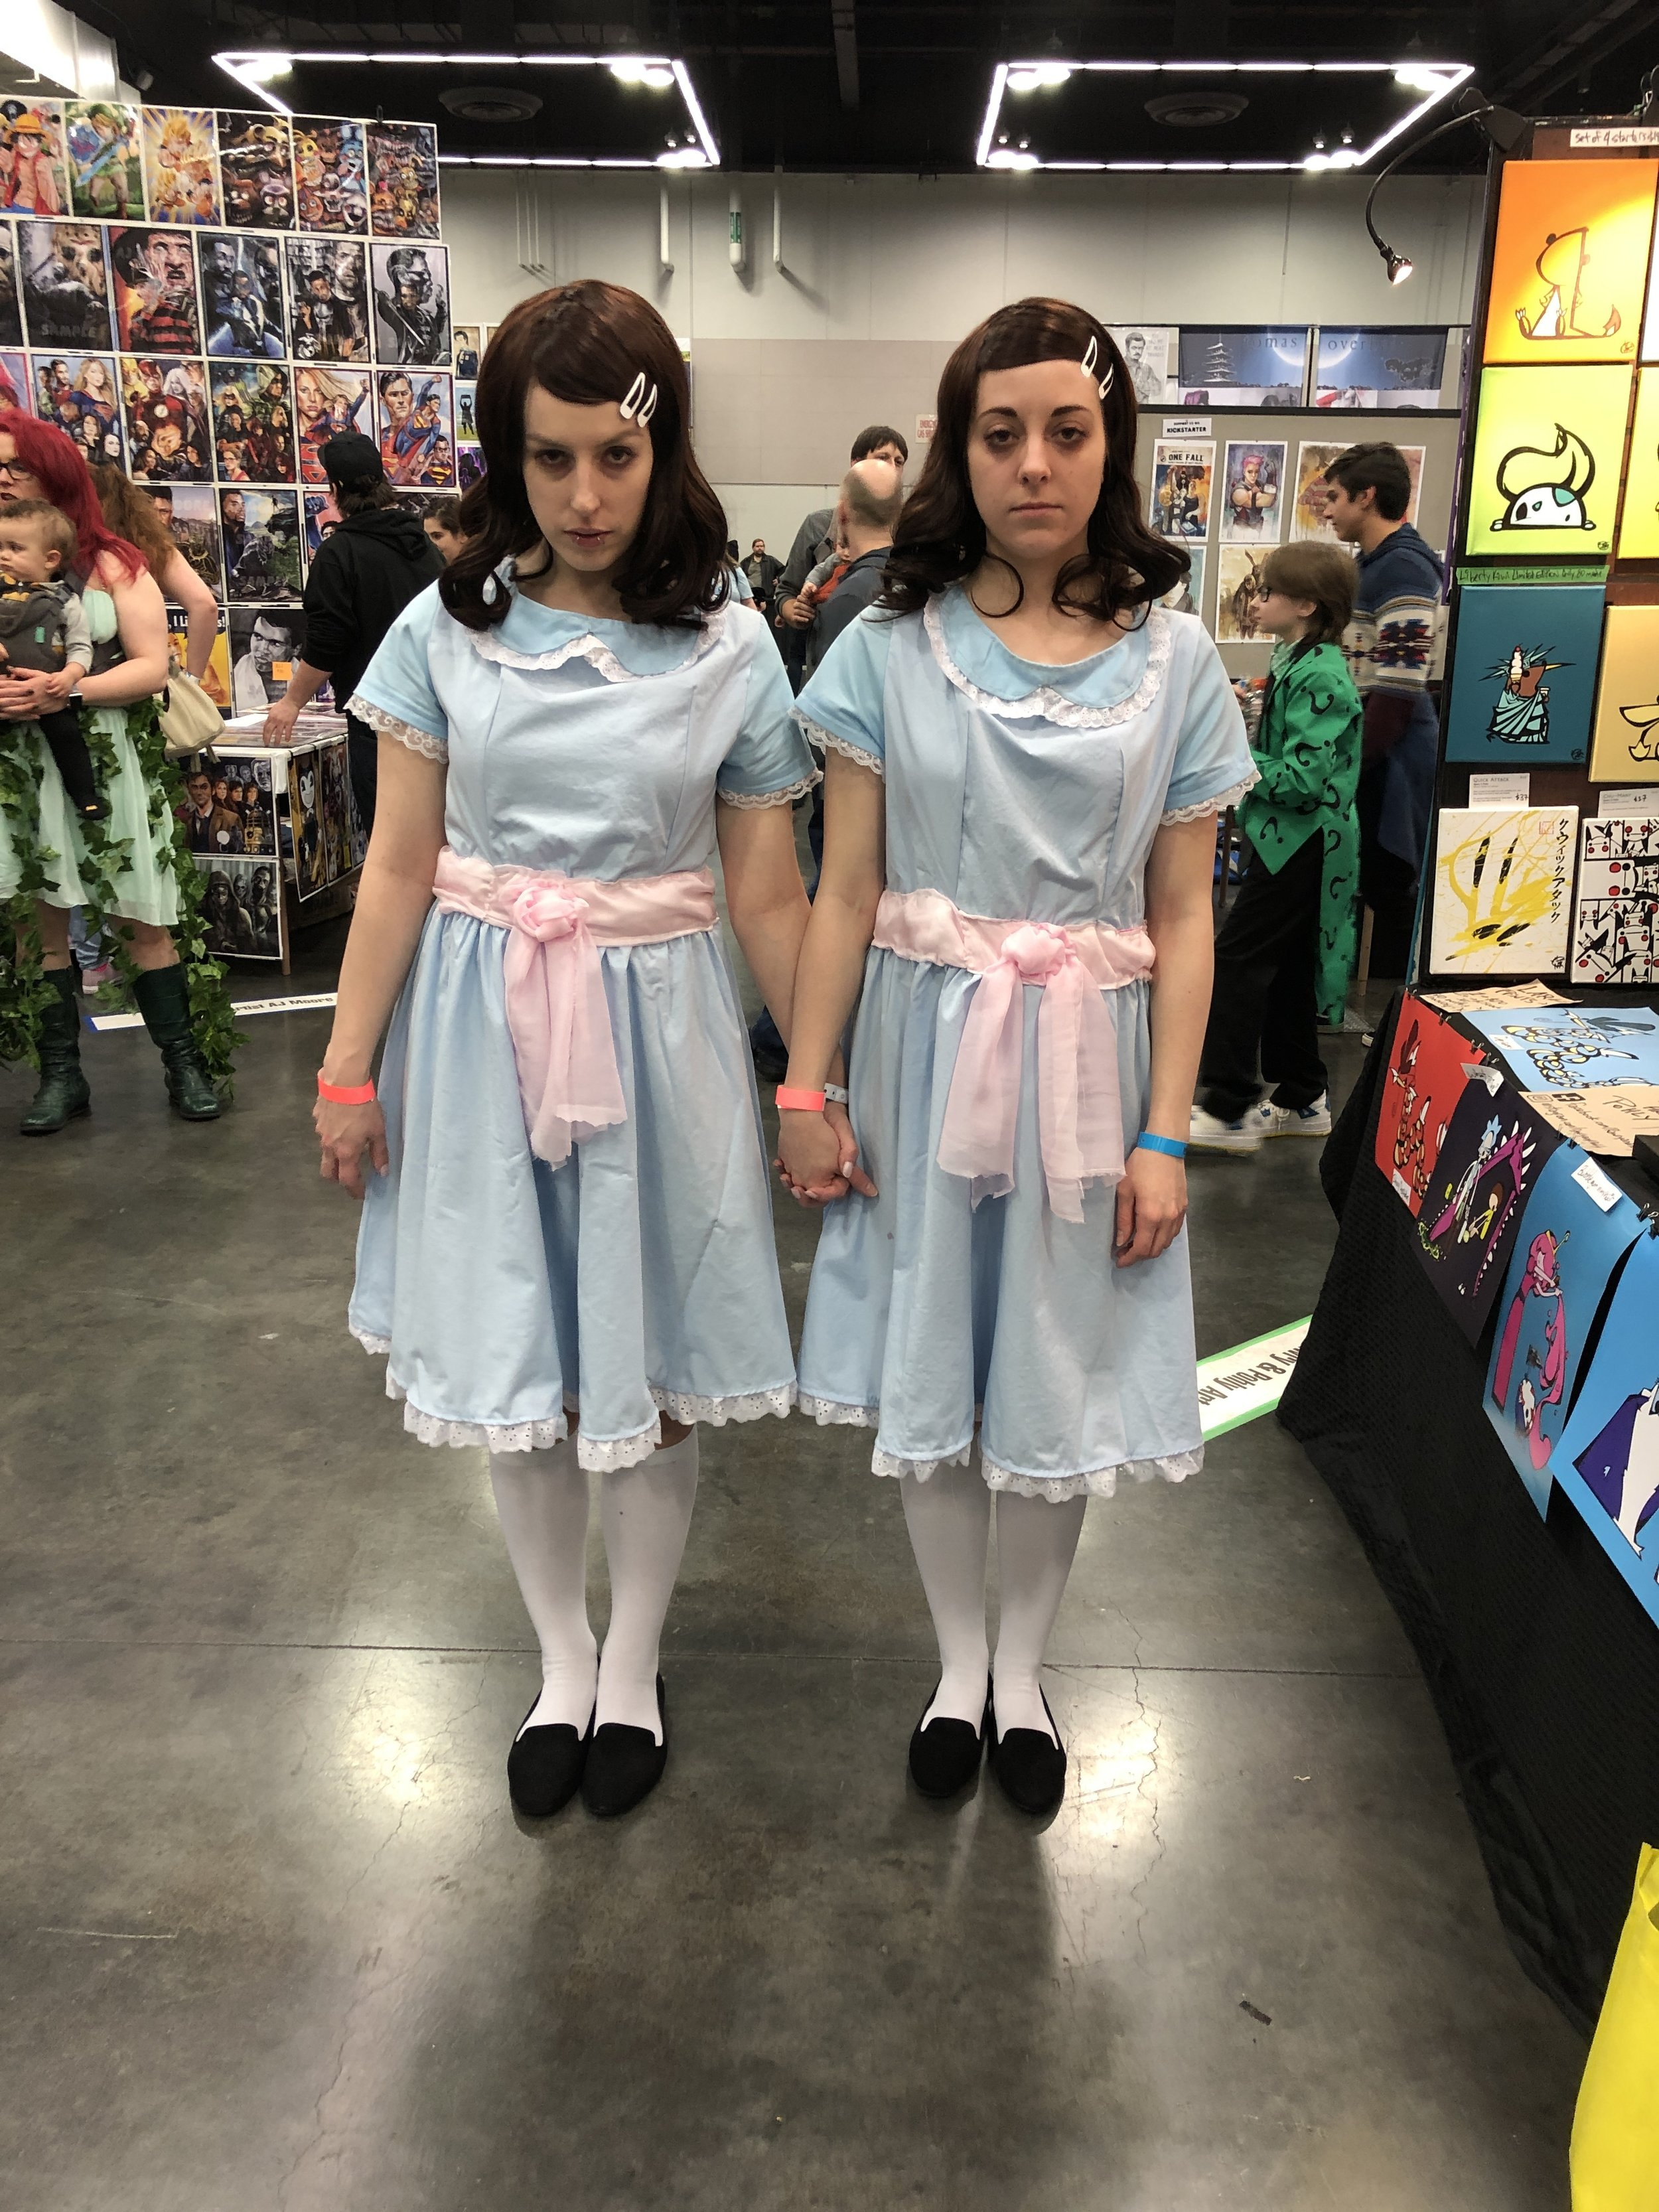 The scary ghost twin cosplayers from the movie, The Shining.